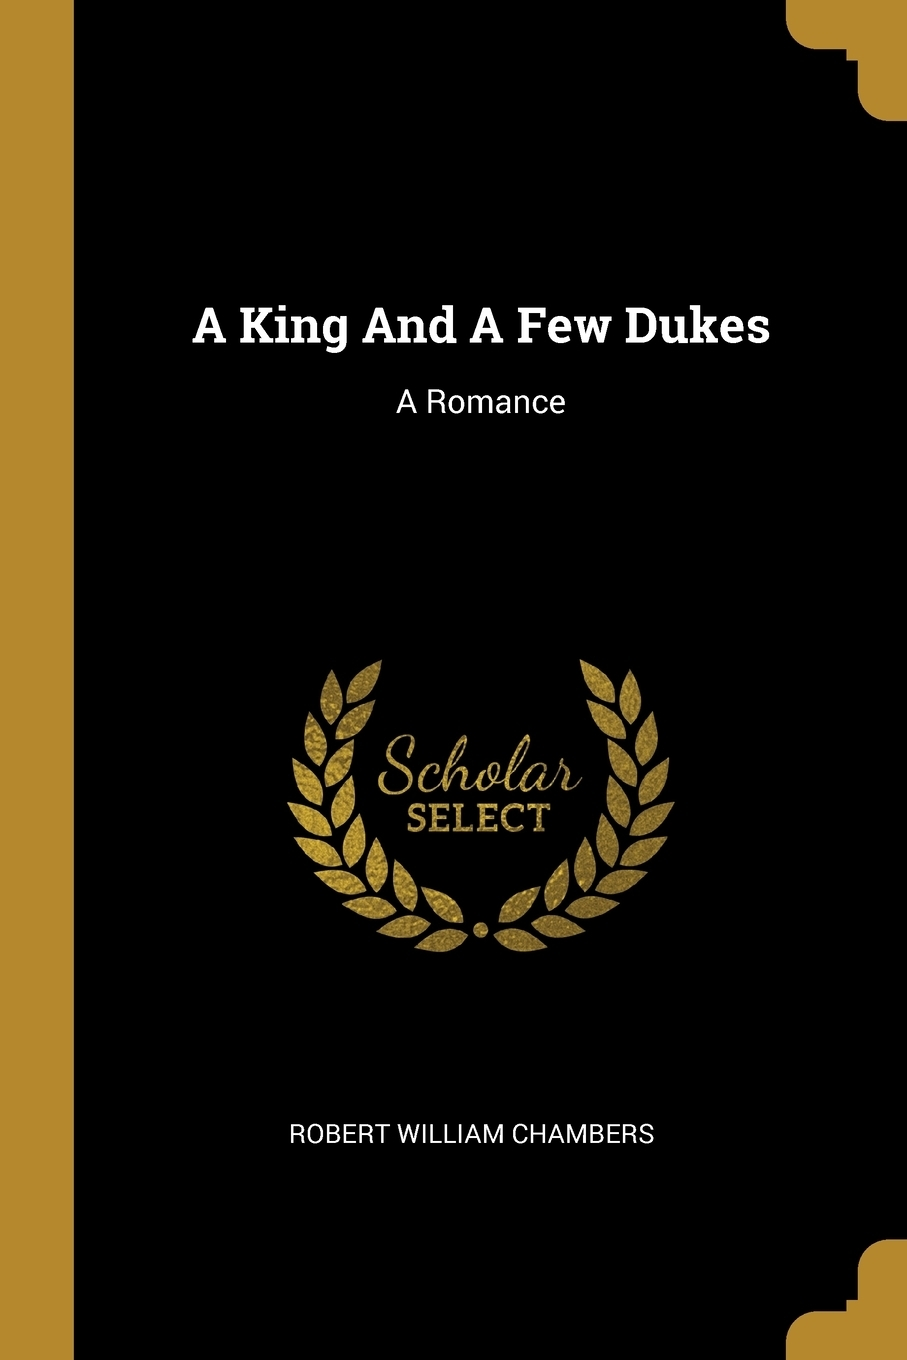 Robert William Chambers. A King And A Few Dukes. A Romance